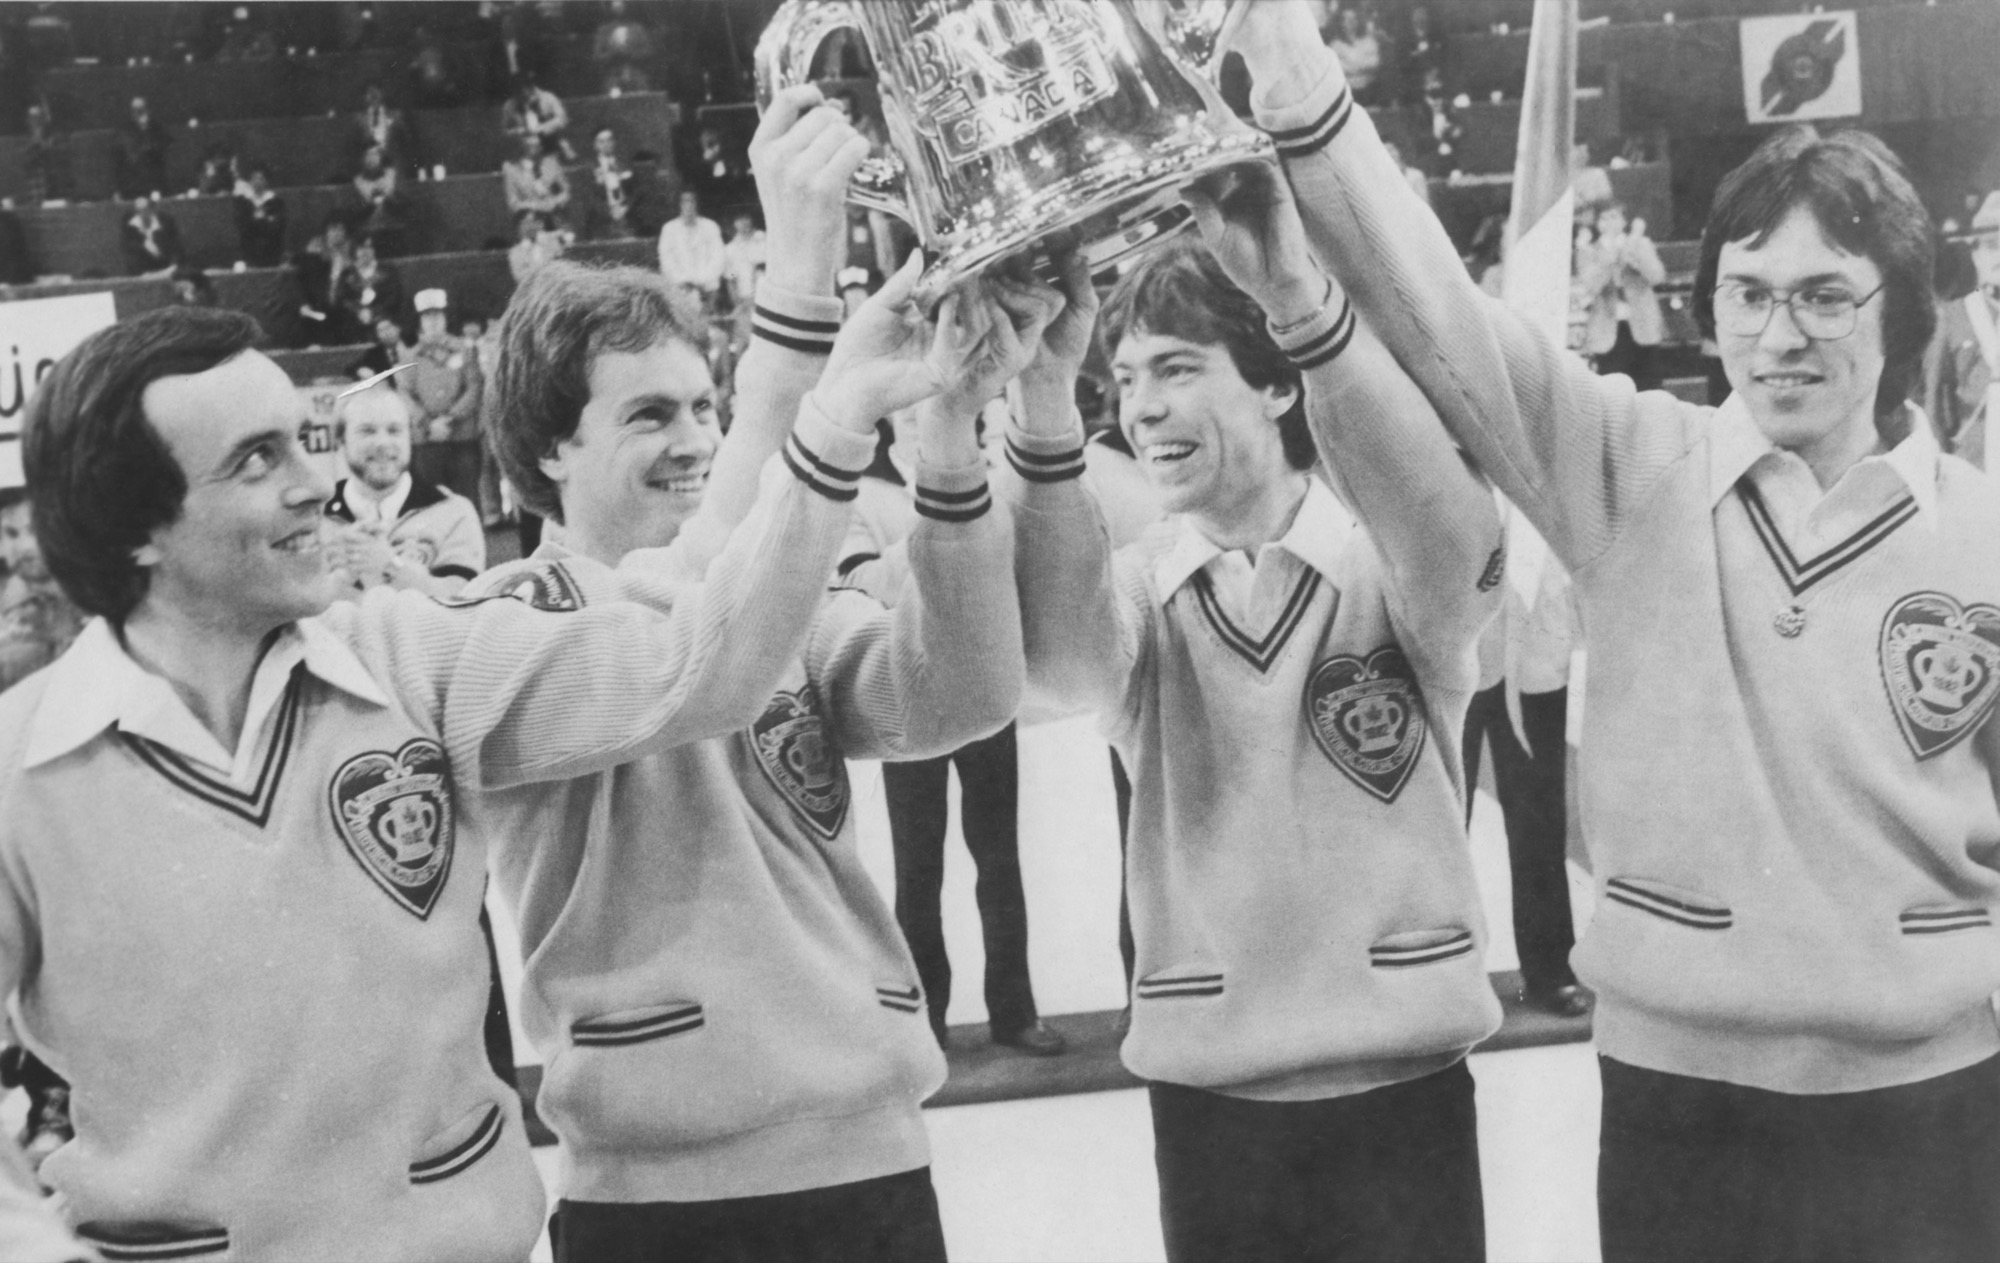 Al Hackner, right, and his Northern Ontario foursome captured the 1982 men's curling championship at the Keystone Centre.